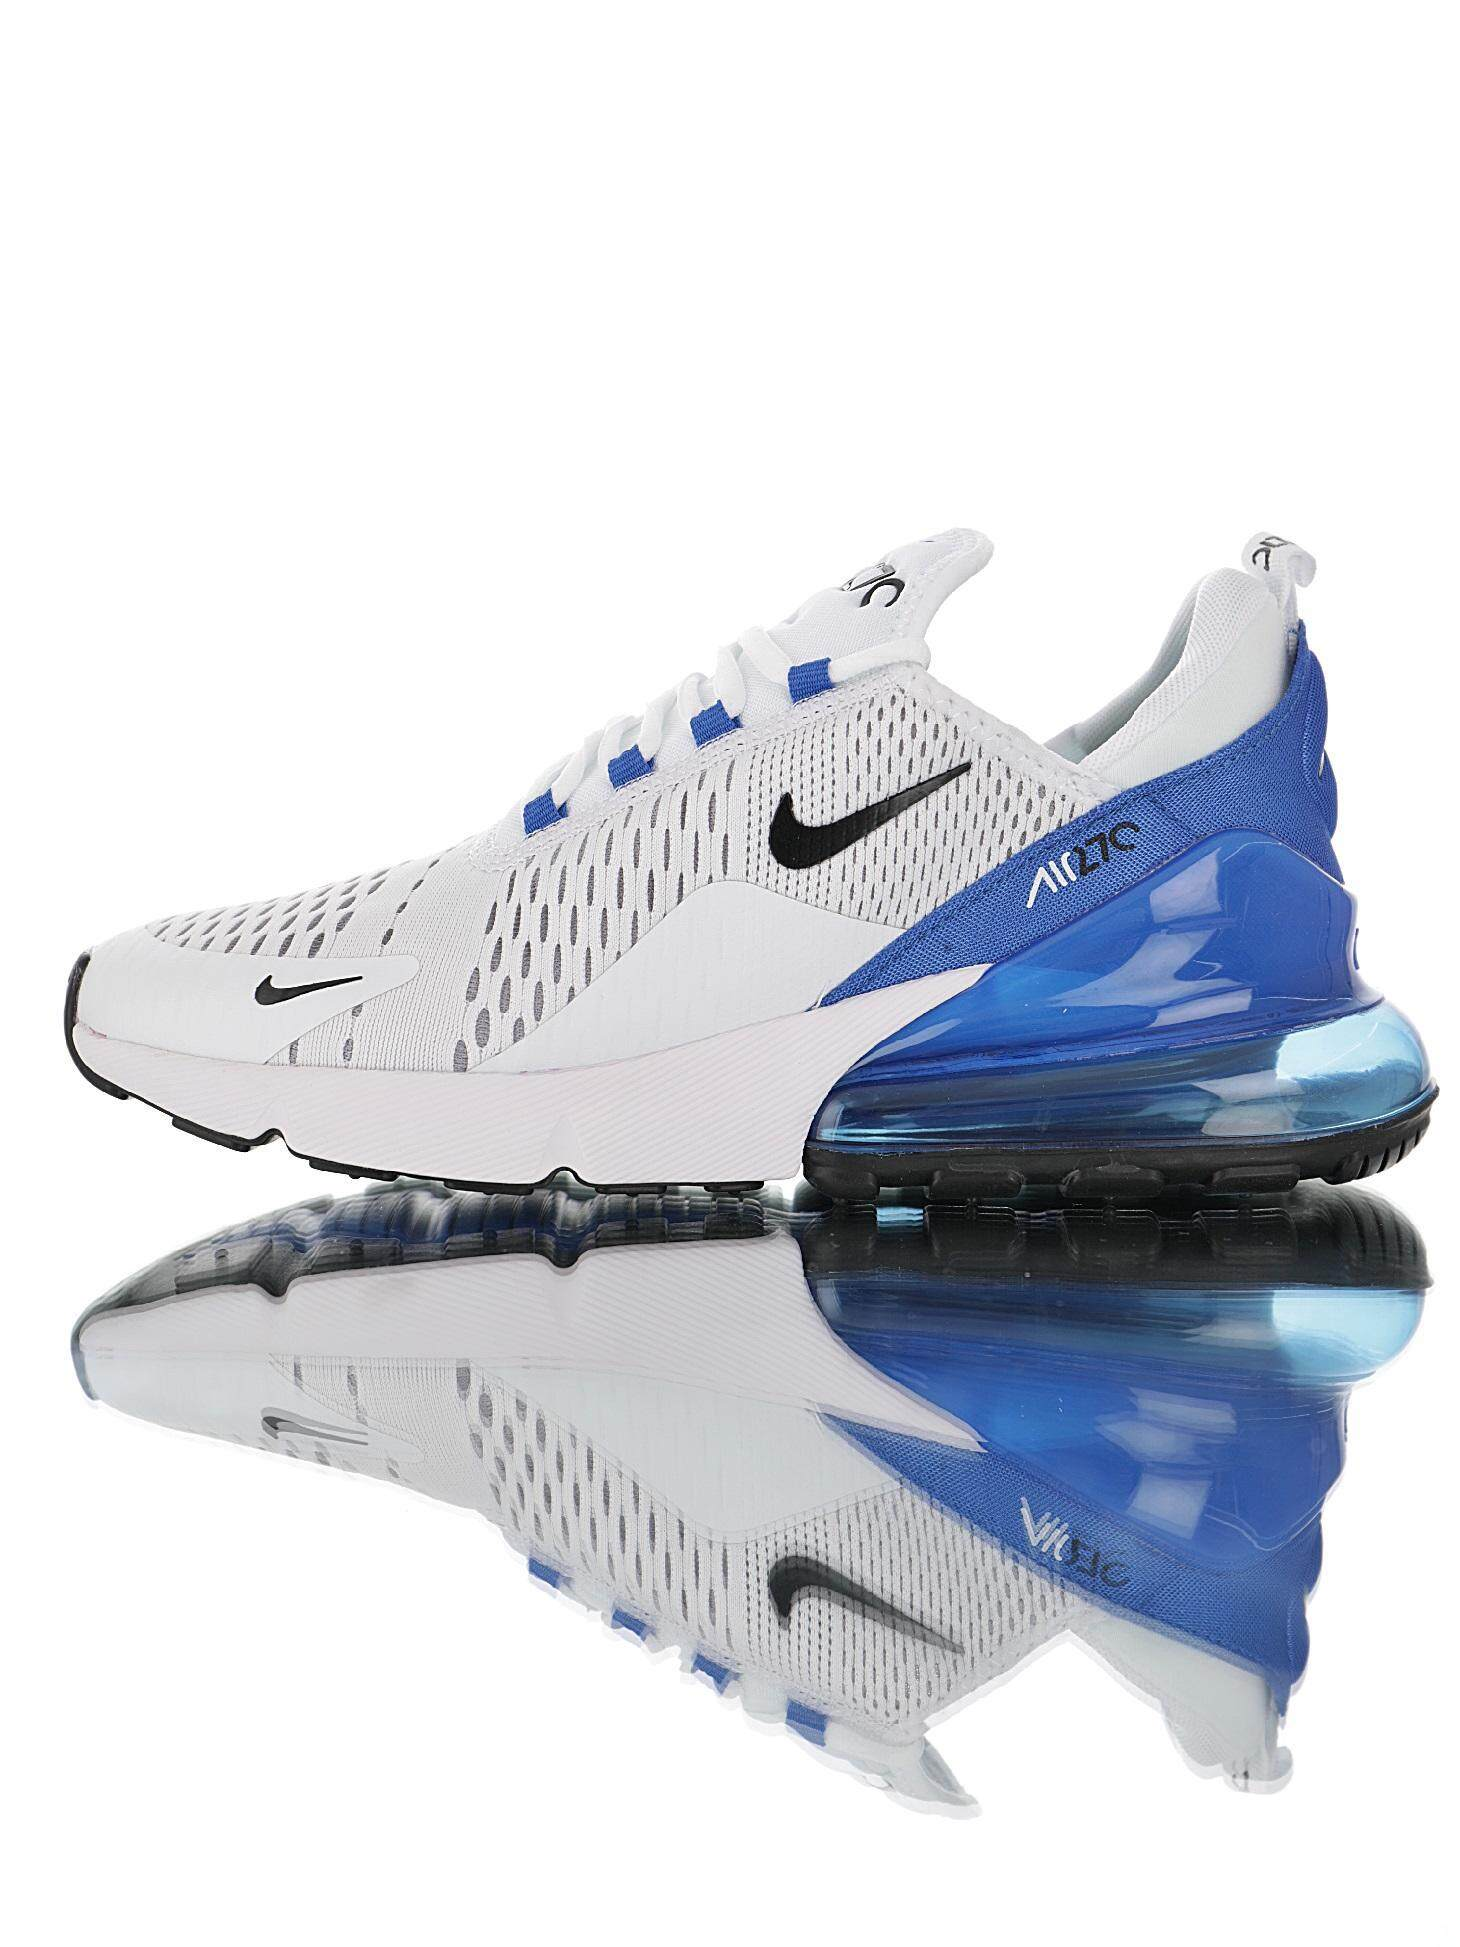 0e8761bbd0 Origonal New Art 2019 NIKE AIR MAX 270 Men's Running Shoes Sneakers women's  sneakers